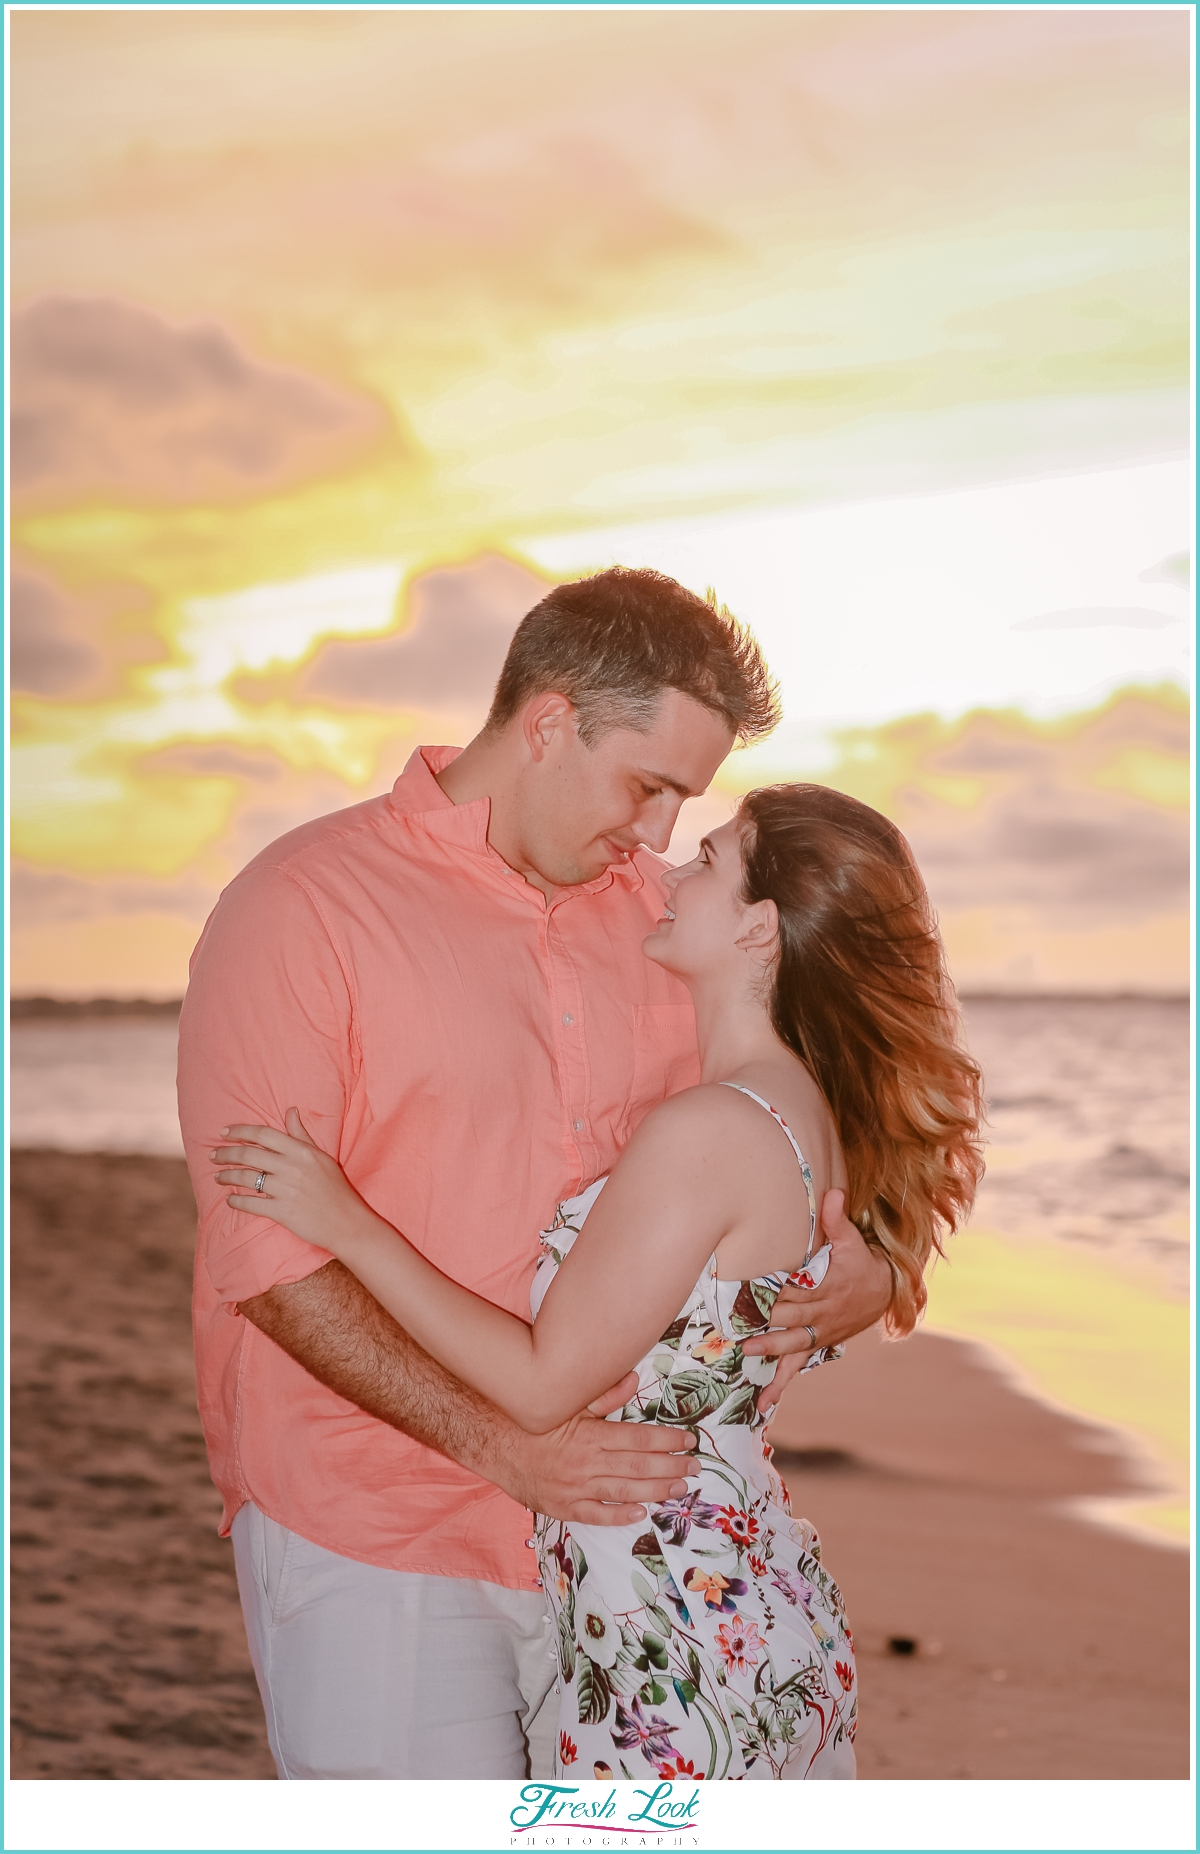 romantic sunset photo shoot